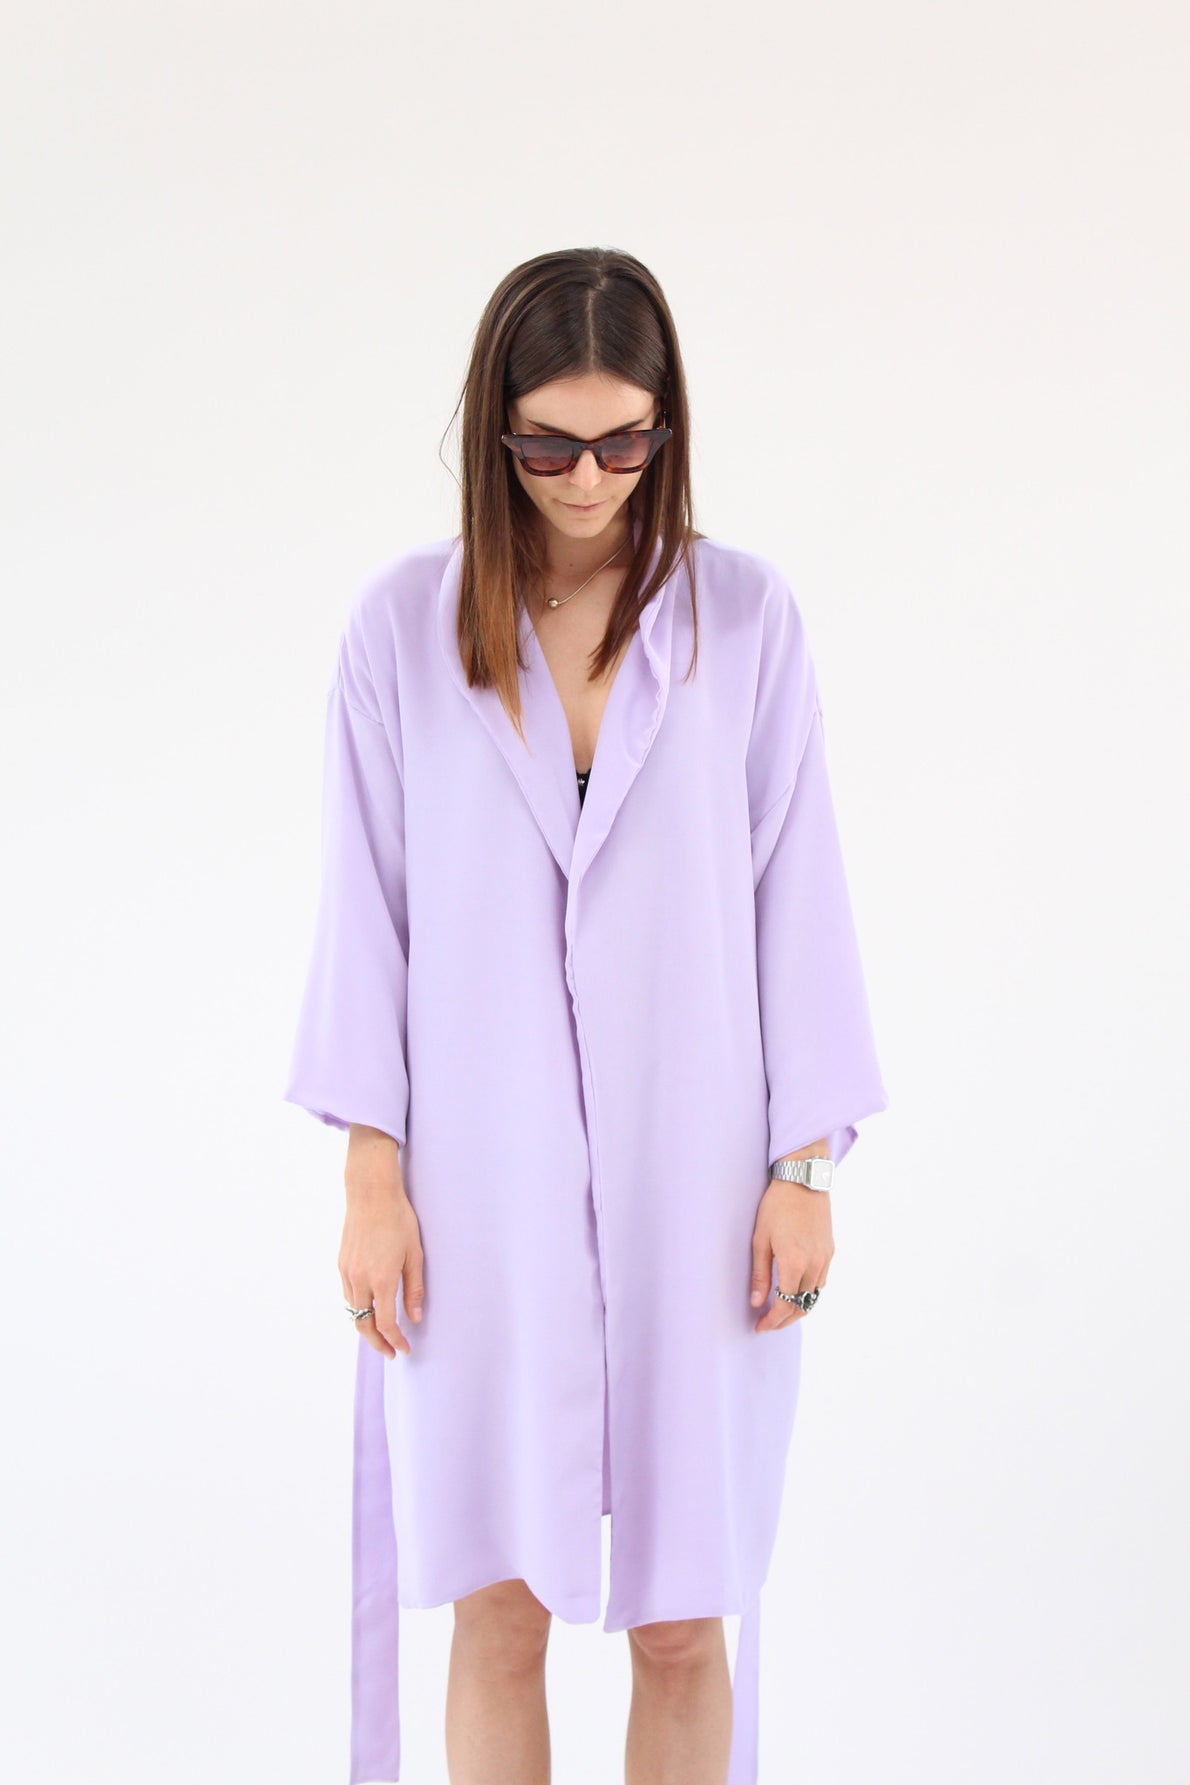 Lina Rennell Silk Robe Lilac / Beklina